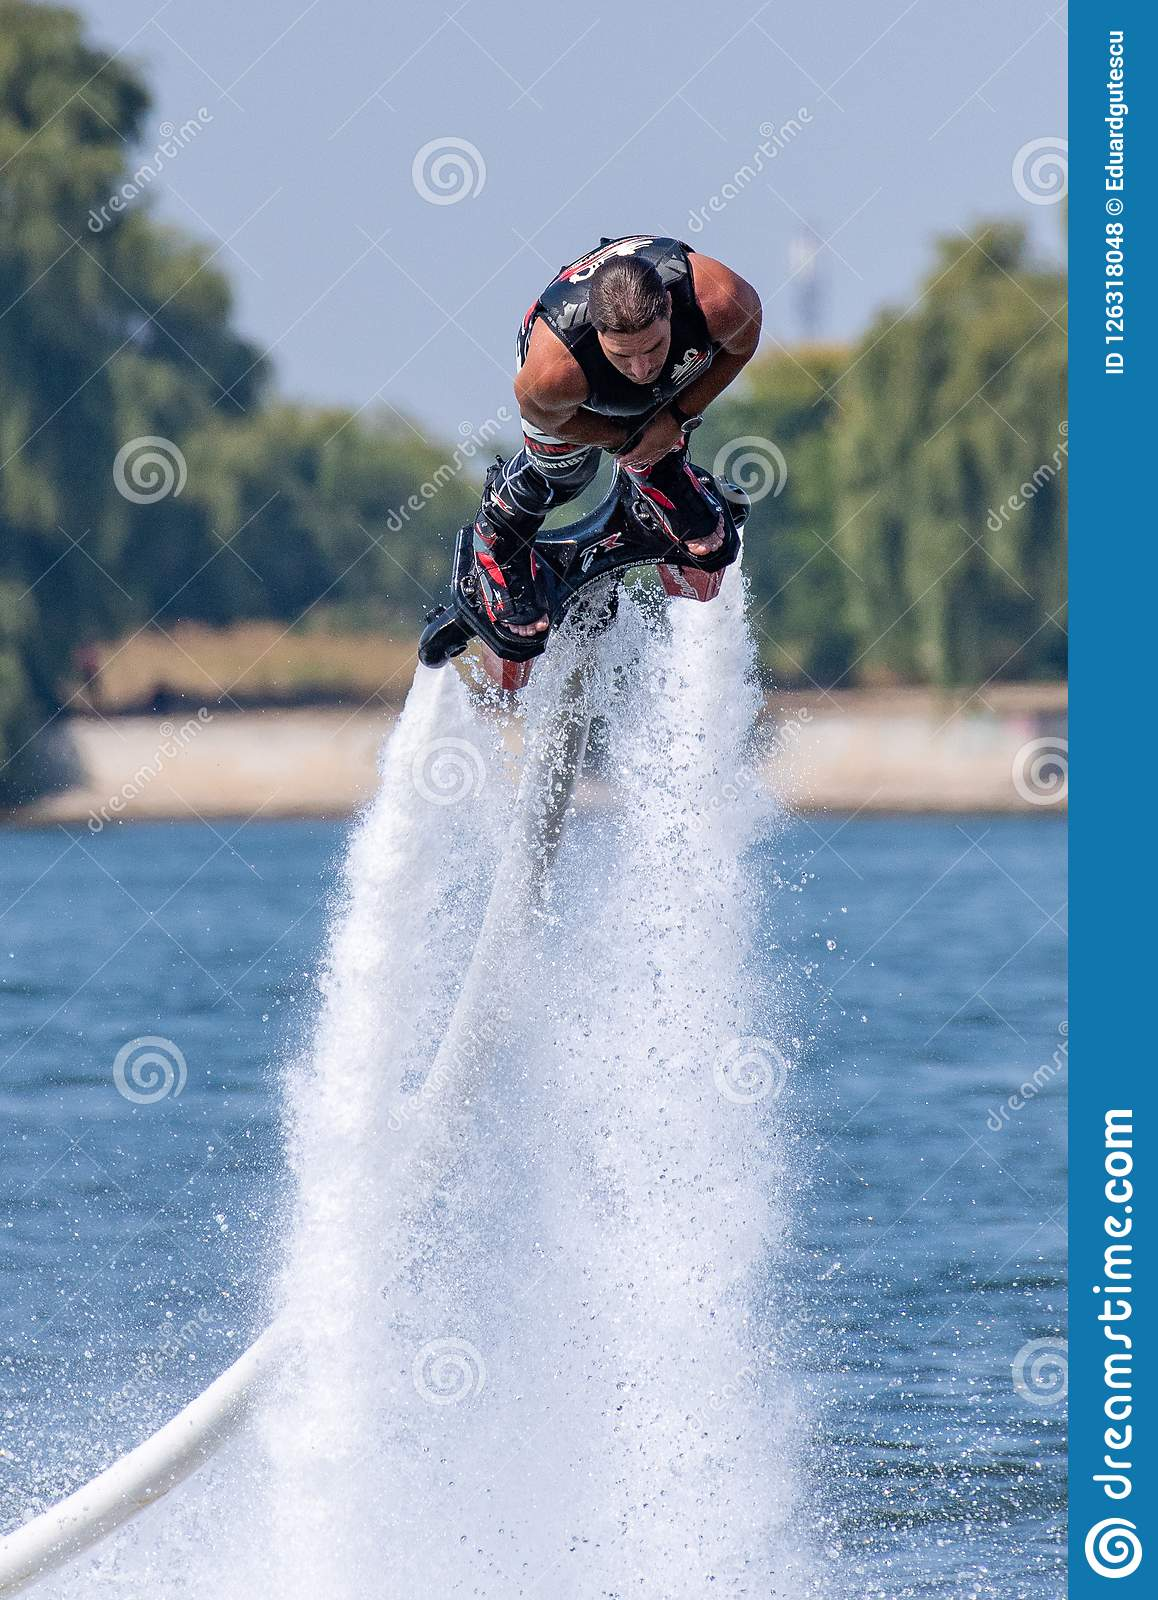 Fly board extreme sports adventure , summer beach sports